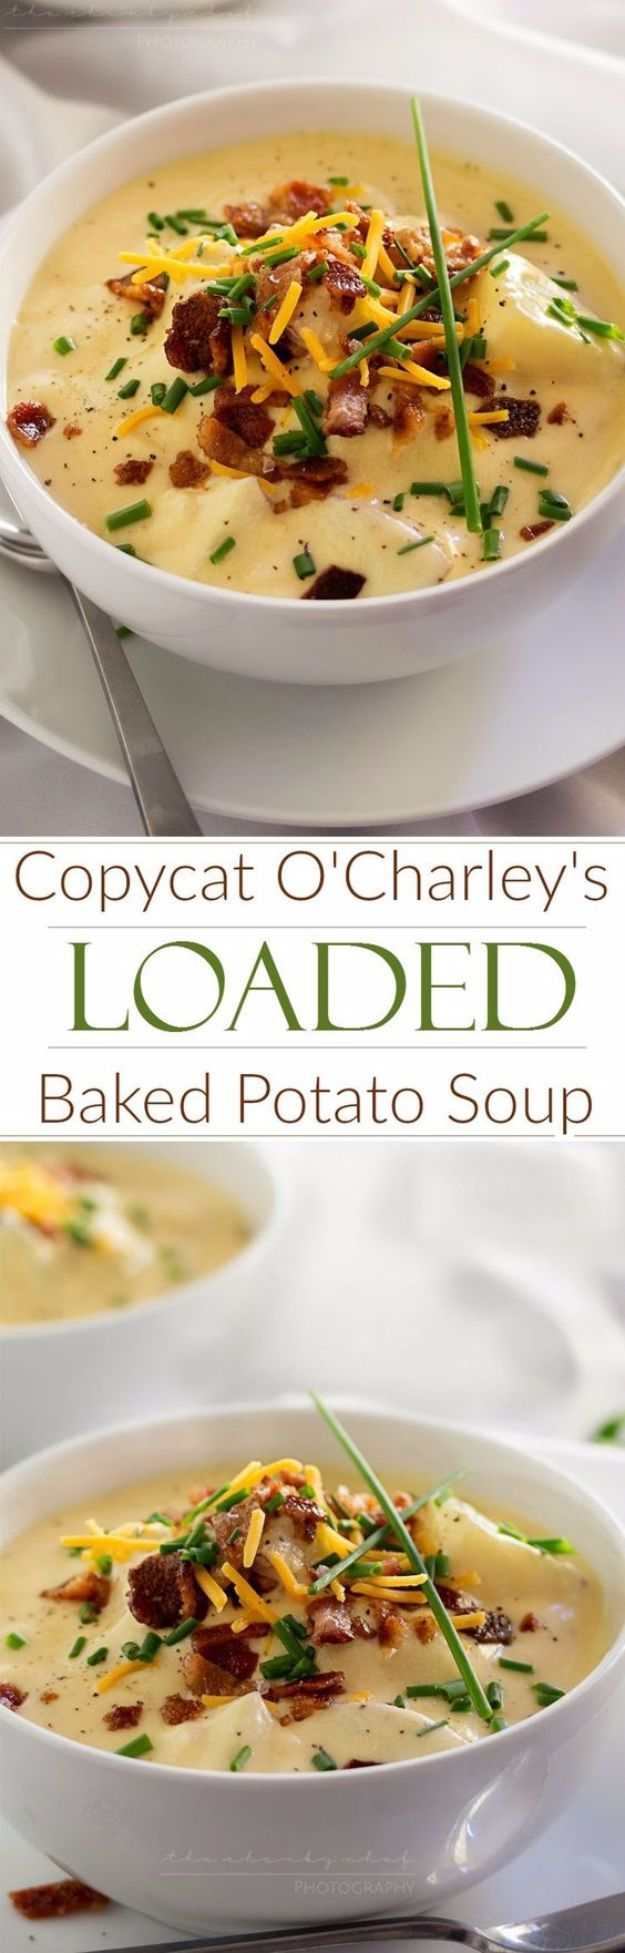 50 More Best Copycat Recipes From Top Restaurants - Copycat O'Charley's Loaded Baked Potato soup - Awesome Recipe Knockoffs and Recipe Ideas from Chipotle Restaurant, Starbucks, Olive Garden, Cinabbon, Cracker Barrel, Taco Bell, Cheesecake Factory, KFC, Mc Donalds, Red Lobster, Panda Express diyjoy.com/...